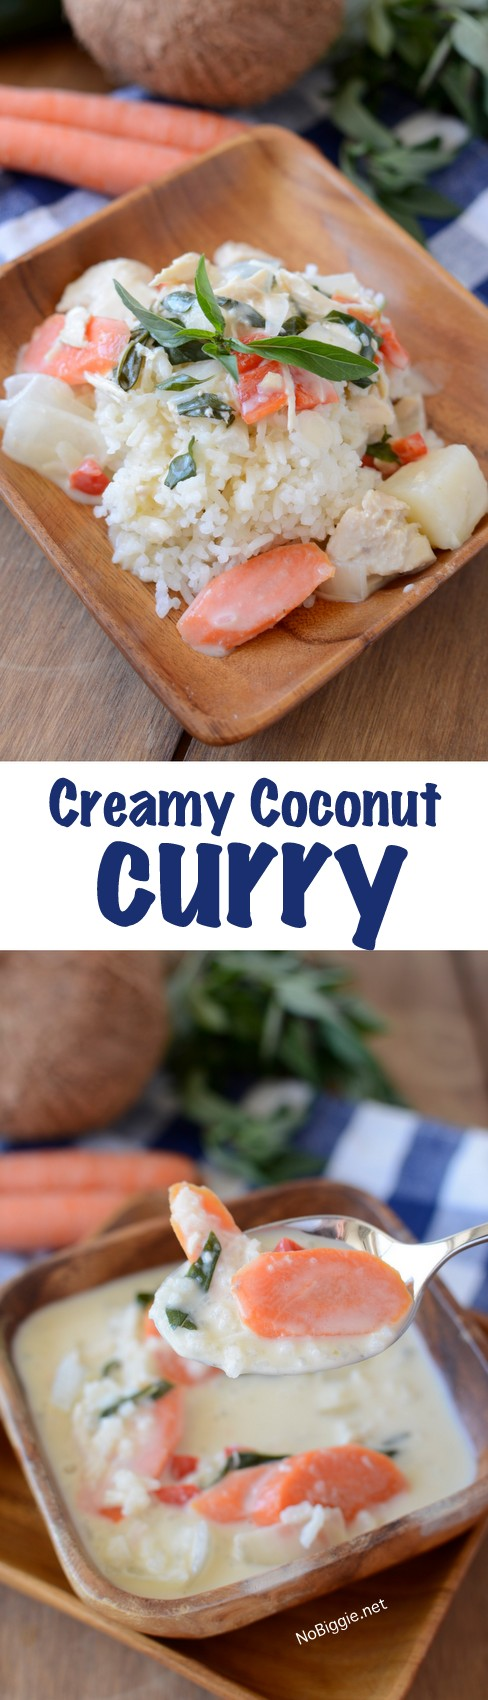 creamy coconut curry this recipe is just like eating out and so easy! | NoBiggie.net